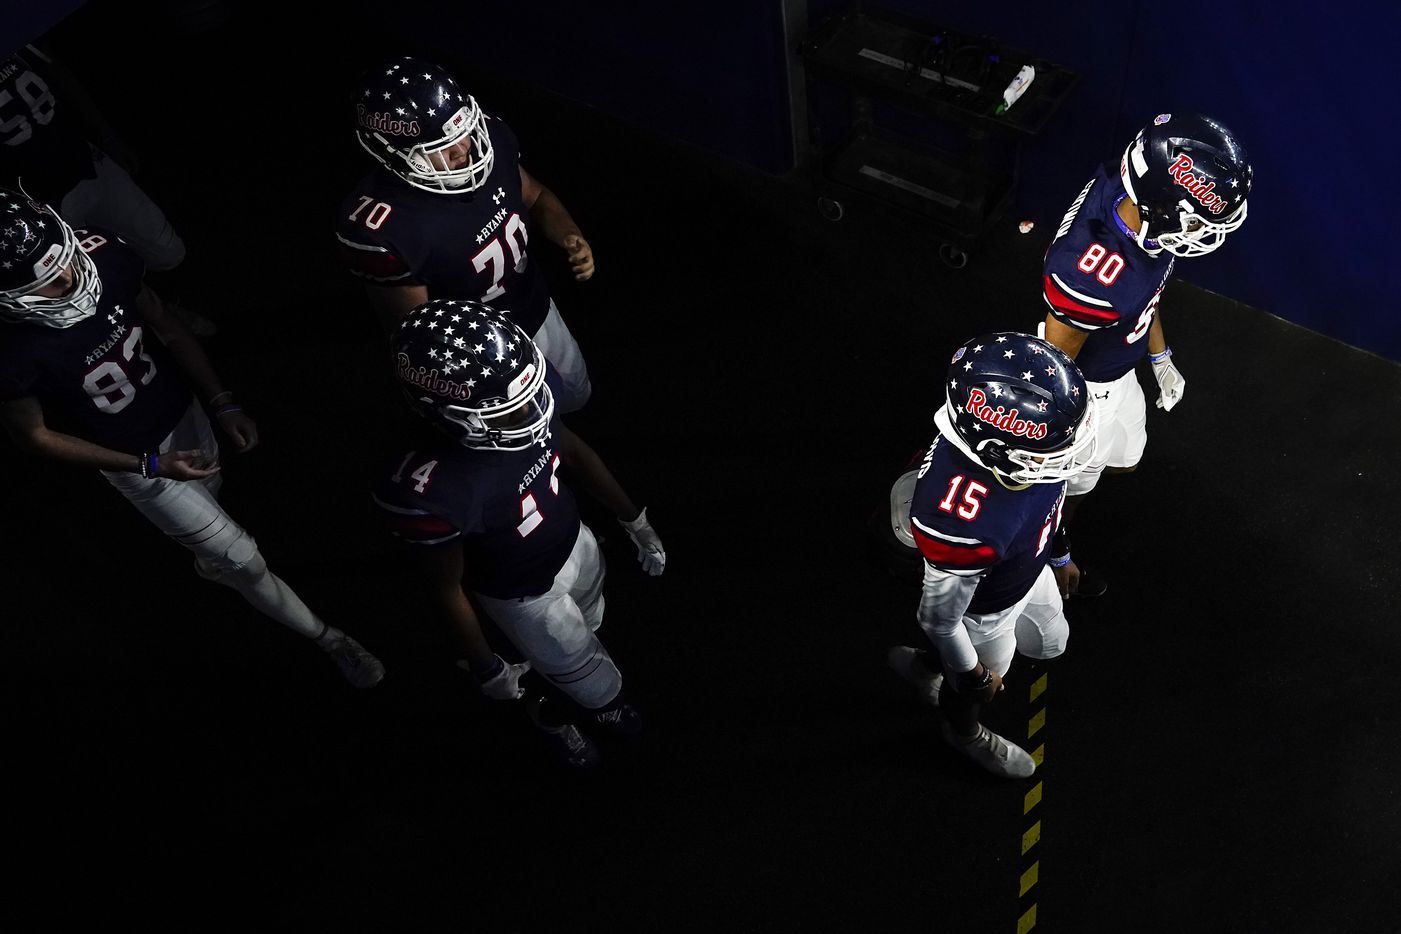 Denton Ryan players take the field to face Cedar Park in the Class 5A Division I state football championship game at AT&T Stadium on Friday, Jan. 15, 2021, in Arlington, Texas. (Smiley N. Pool/The Dallas Morning News)